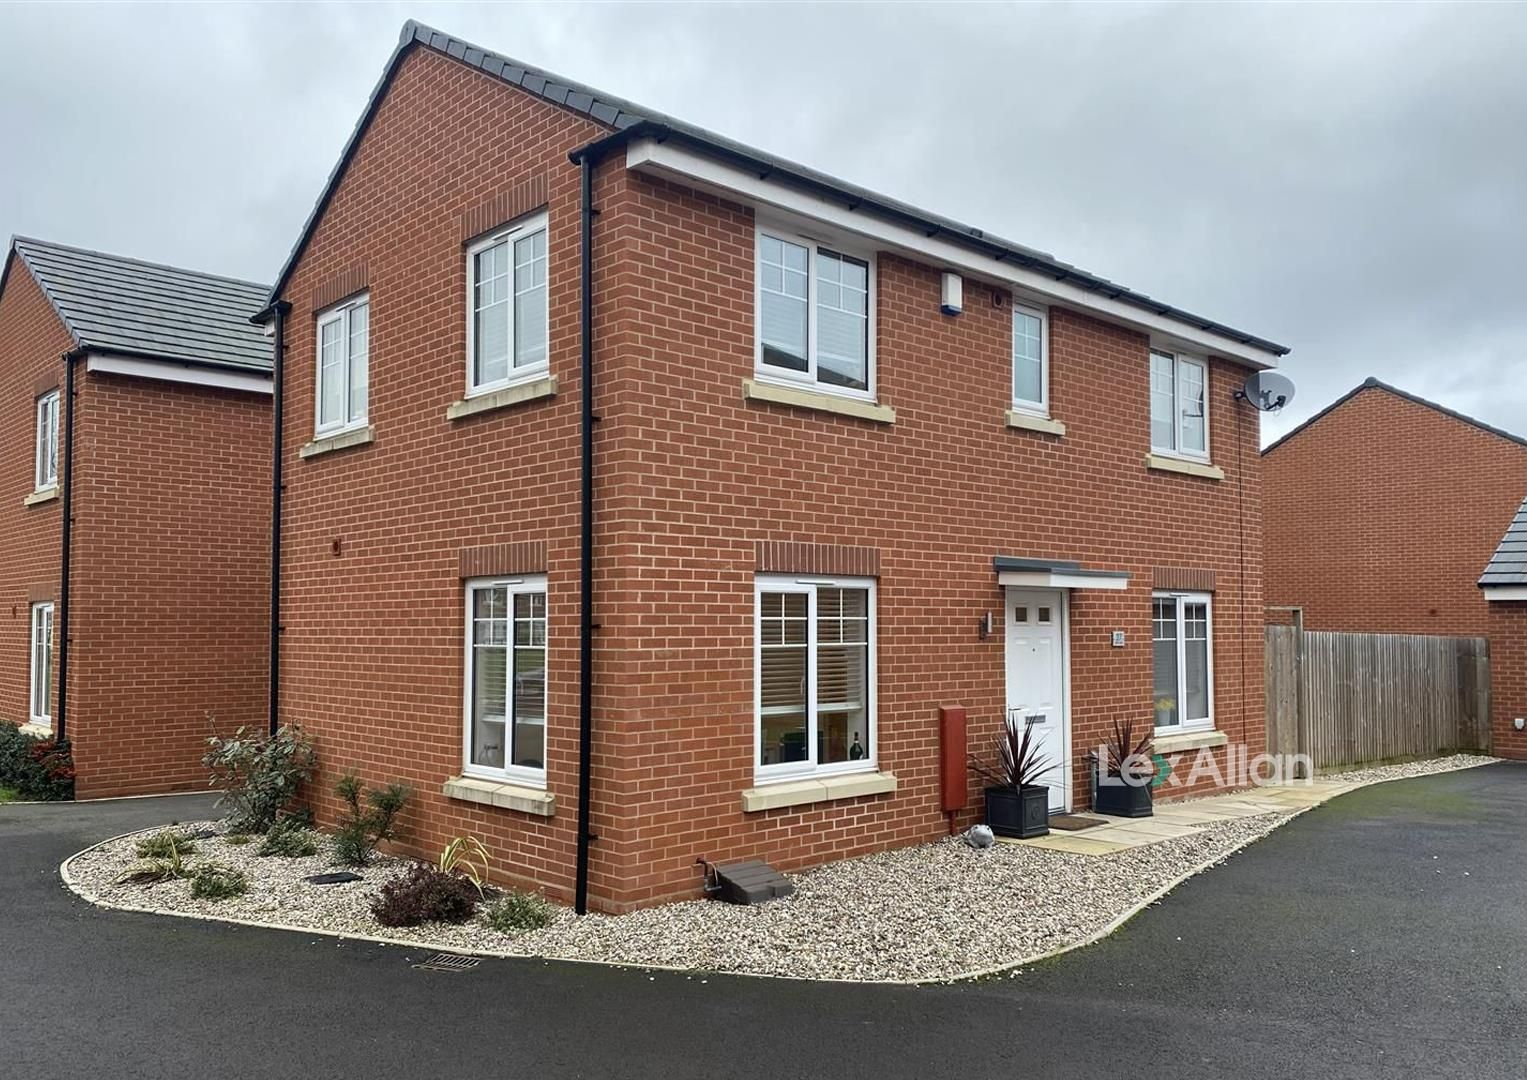 3 bed detached for sale in Wollaston, DY8